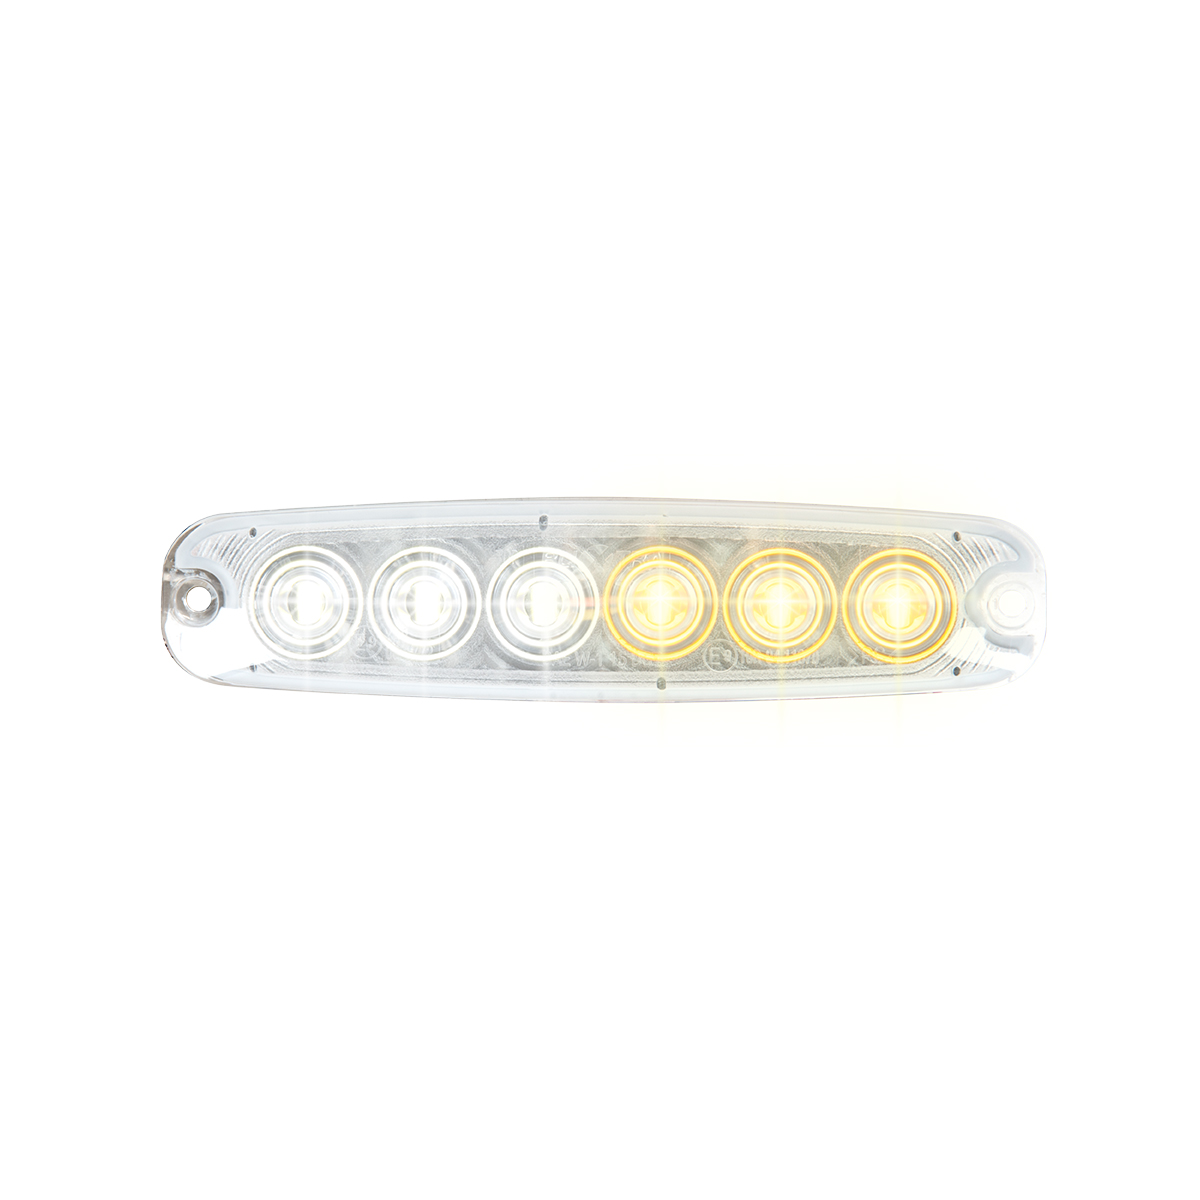 "5 ⅛"" Ultra Thin Strobe LED Light - Amber and White/Clear"